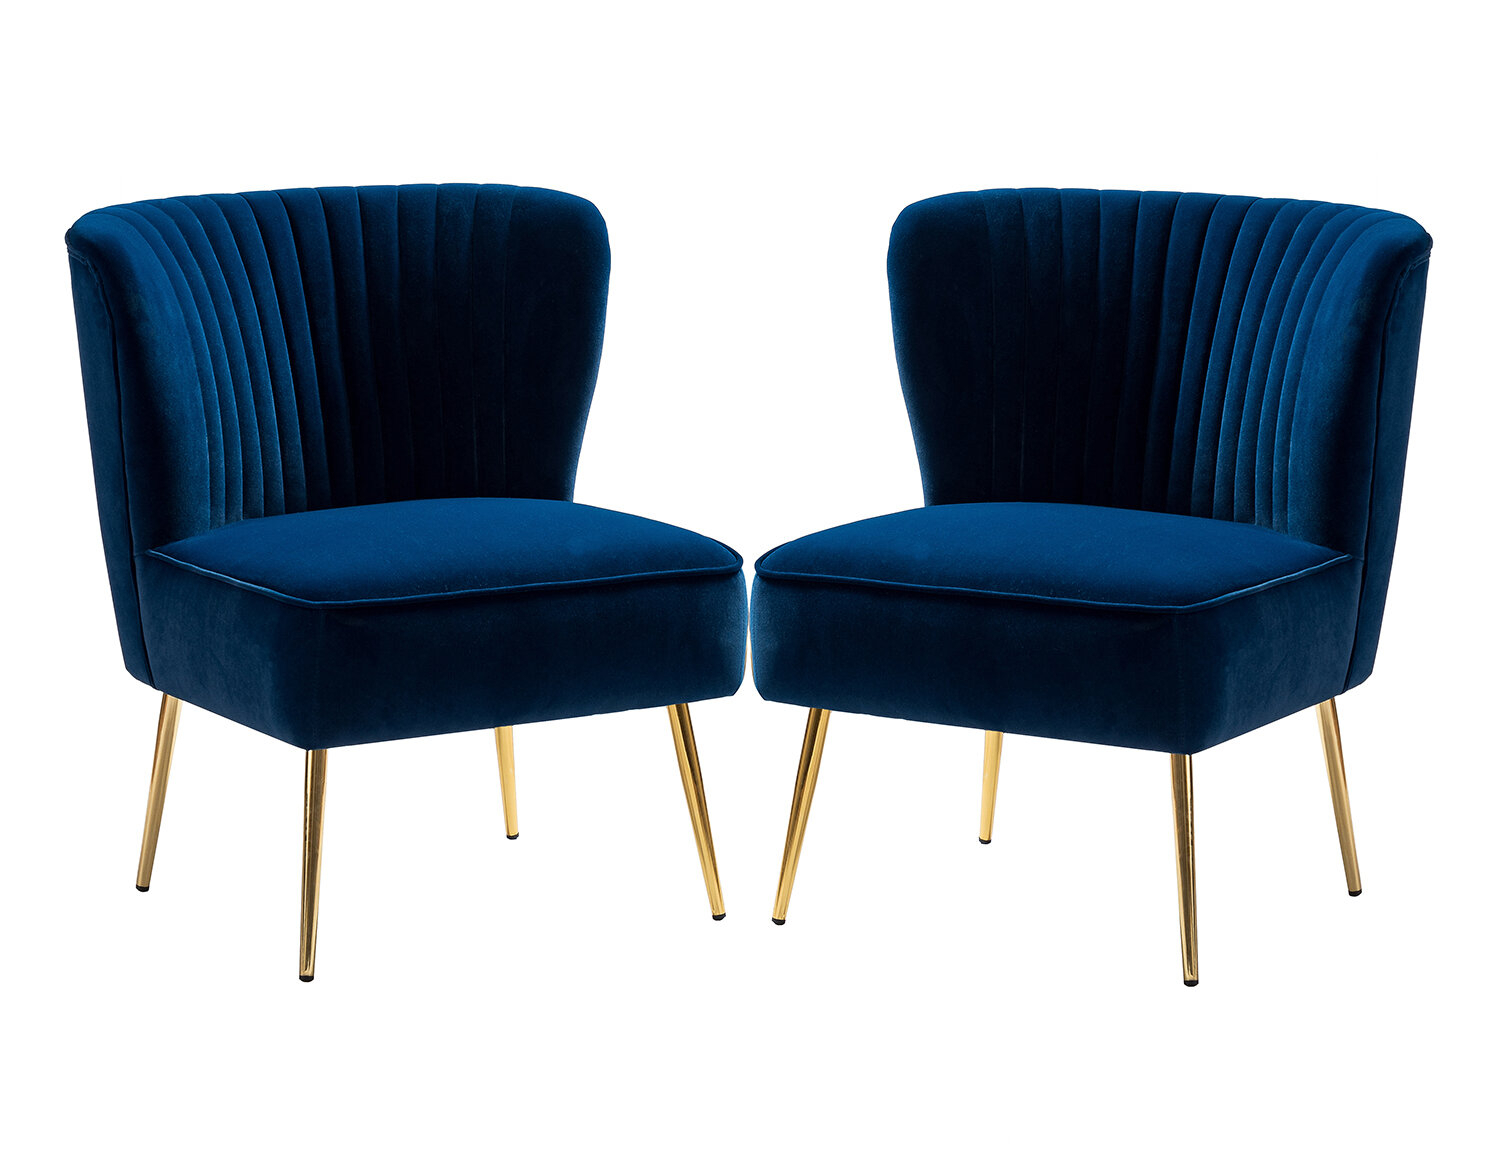 Accent Chairs | Up To 60% Off Through 01/19 | Wayfair Inside Erasmus Side Chairs (View 9 of 15)